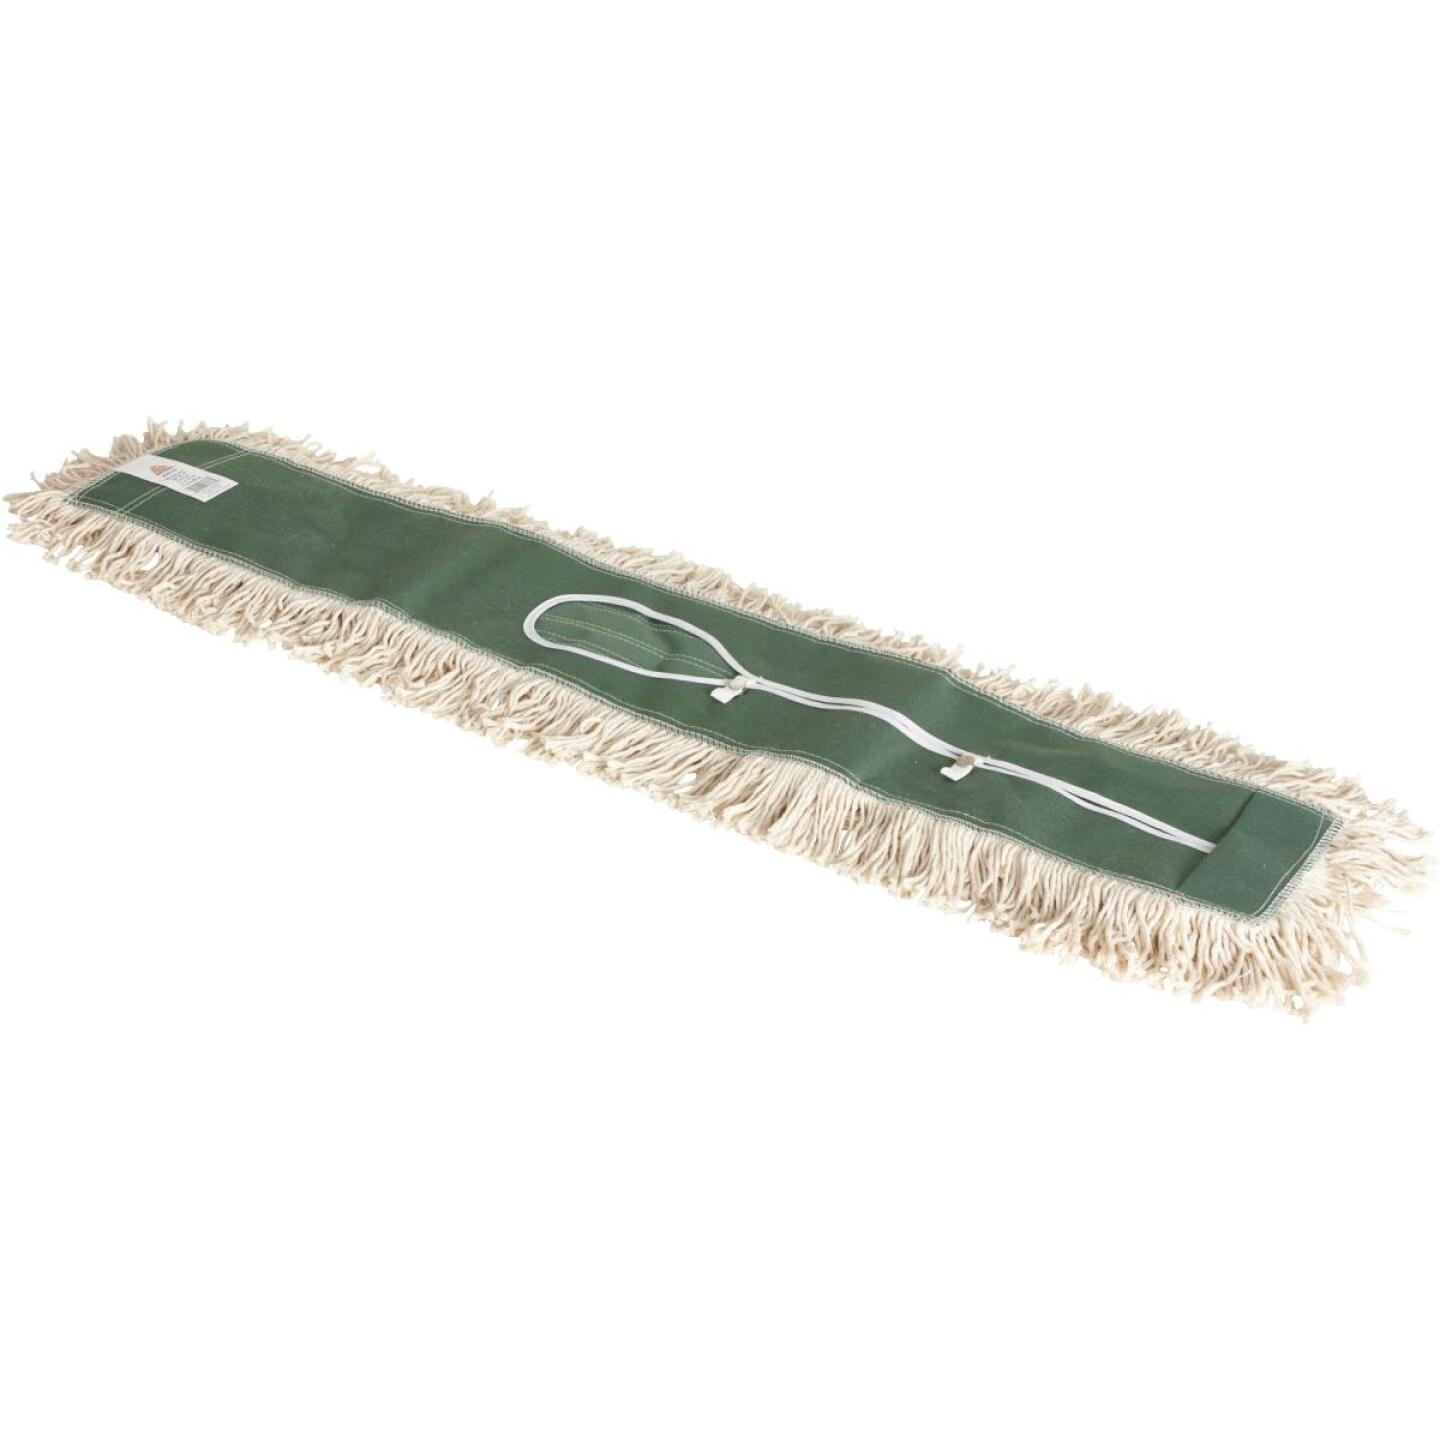 Nexstep Commercial 36 In. Cotton Dust Mop Refill Image 2